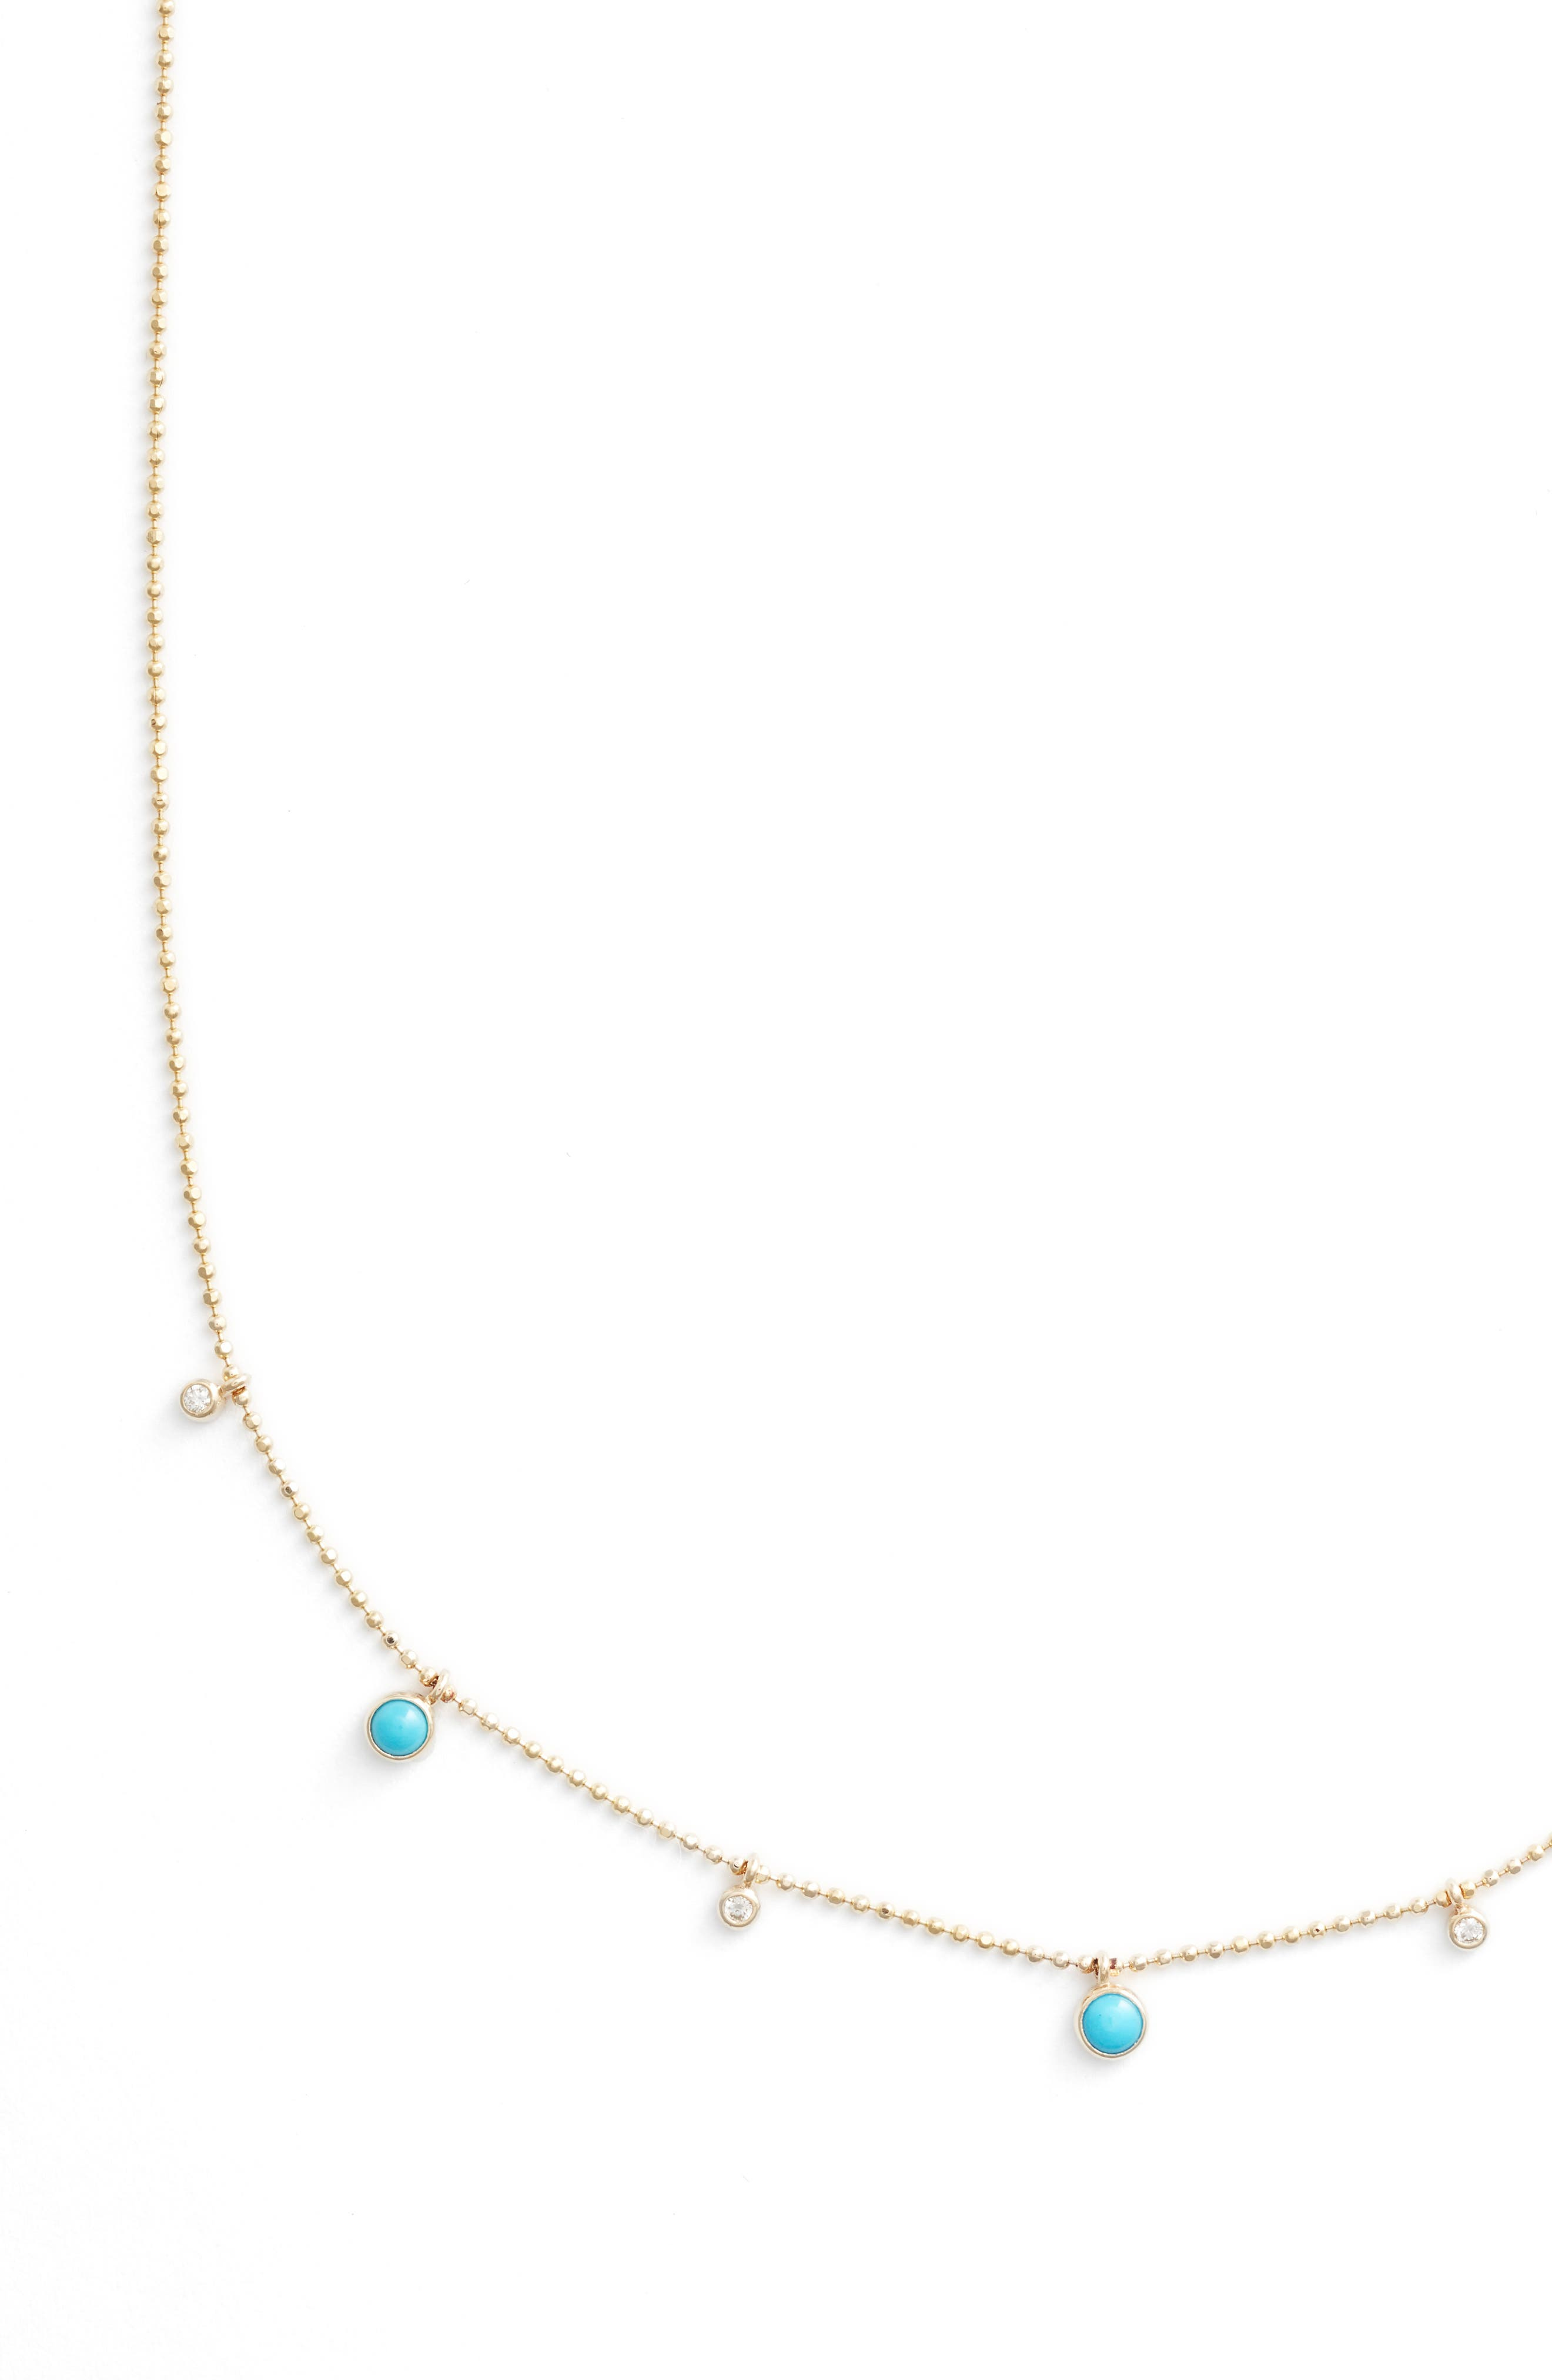 Turquoise & Diamond Station Short Necklace,                         Main,                         color, YELLOW GOLD